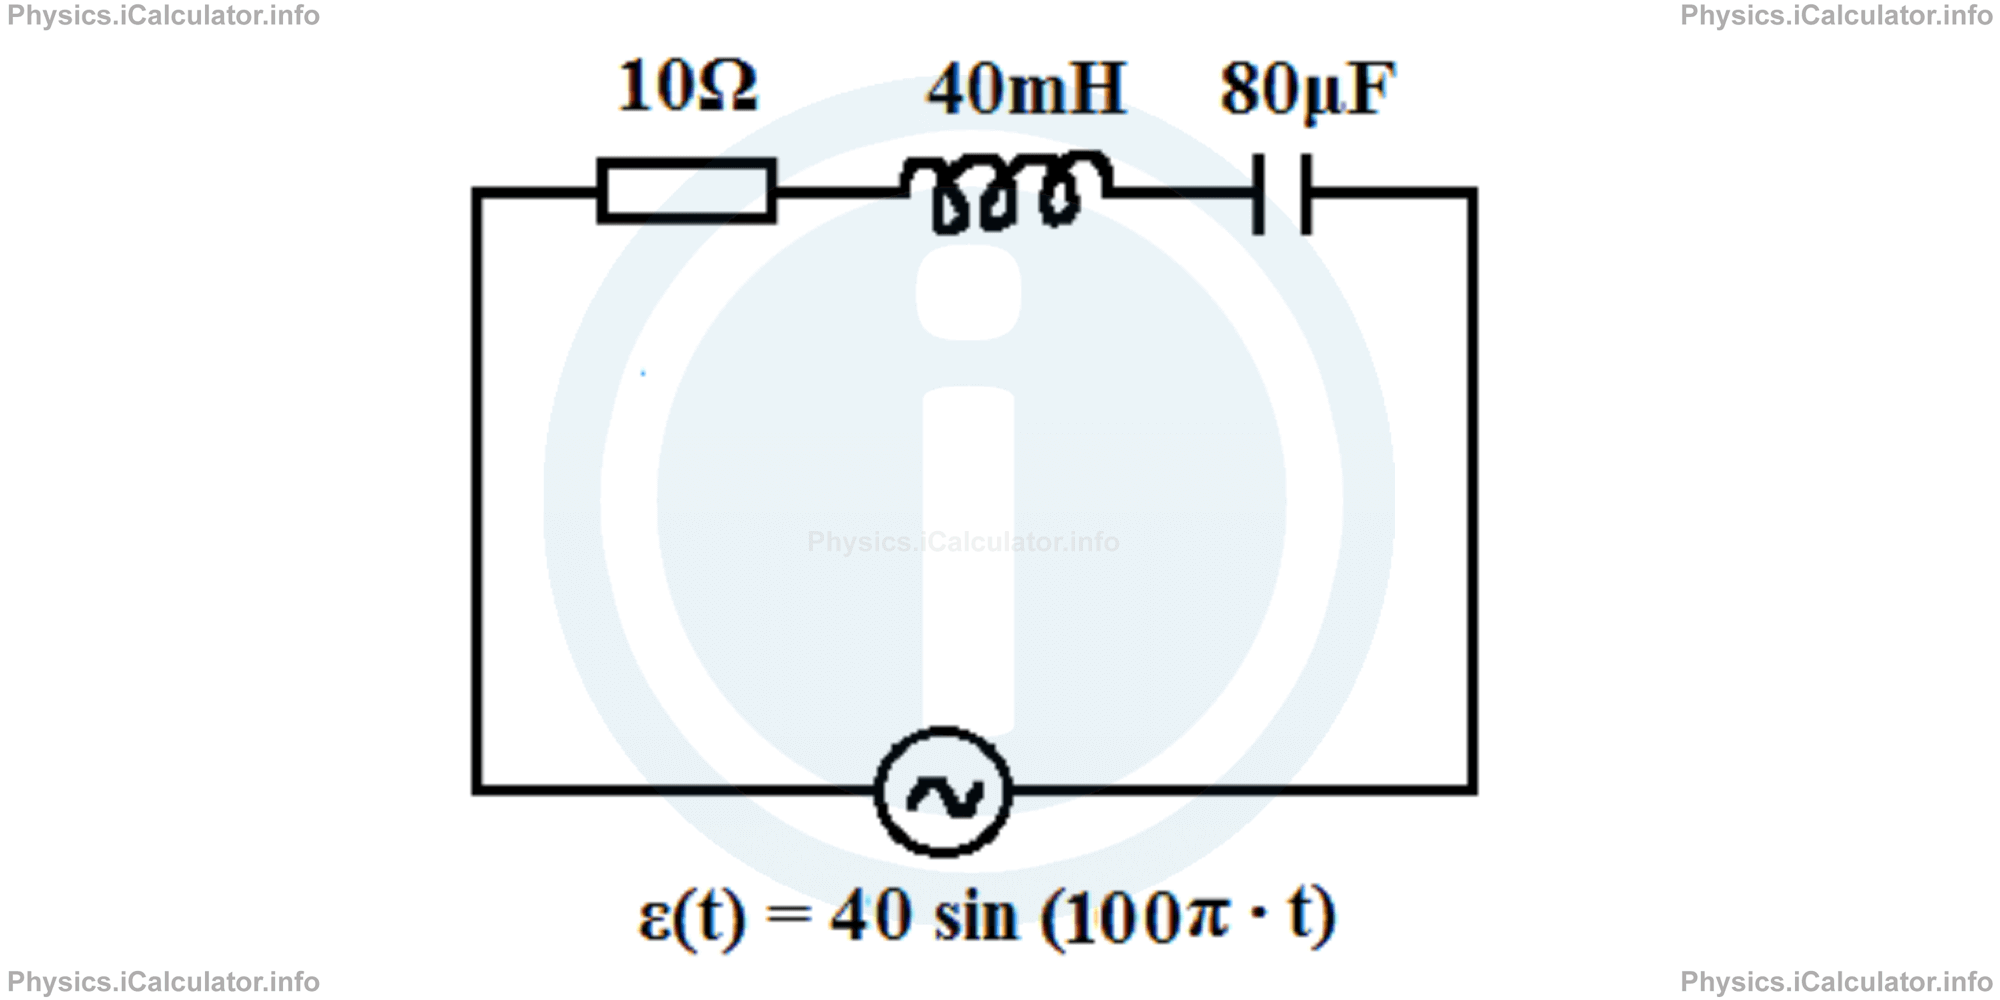 Physics Tutorials: This image provides visual information for the physics tutorial The Series RLC Circuit